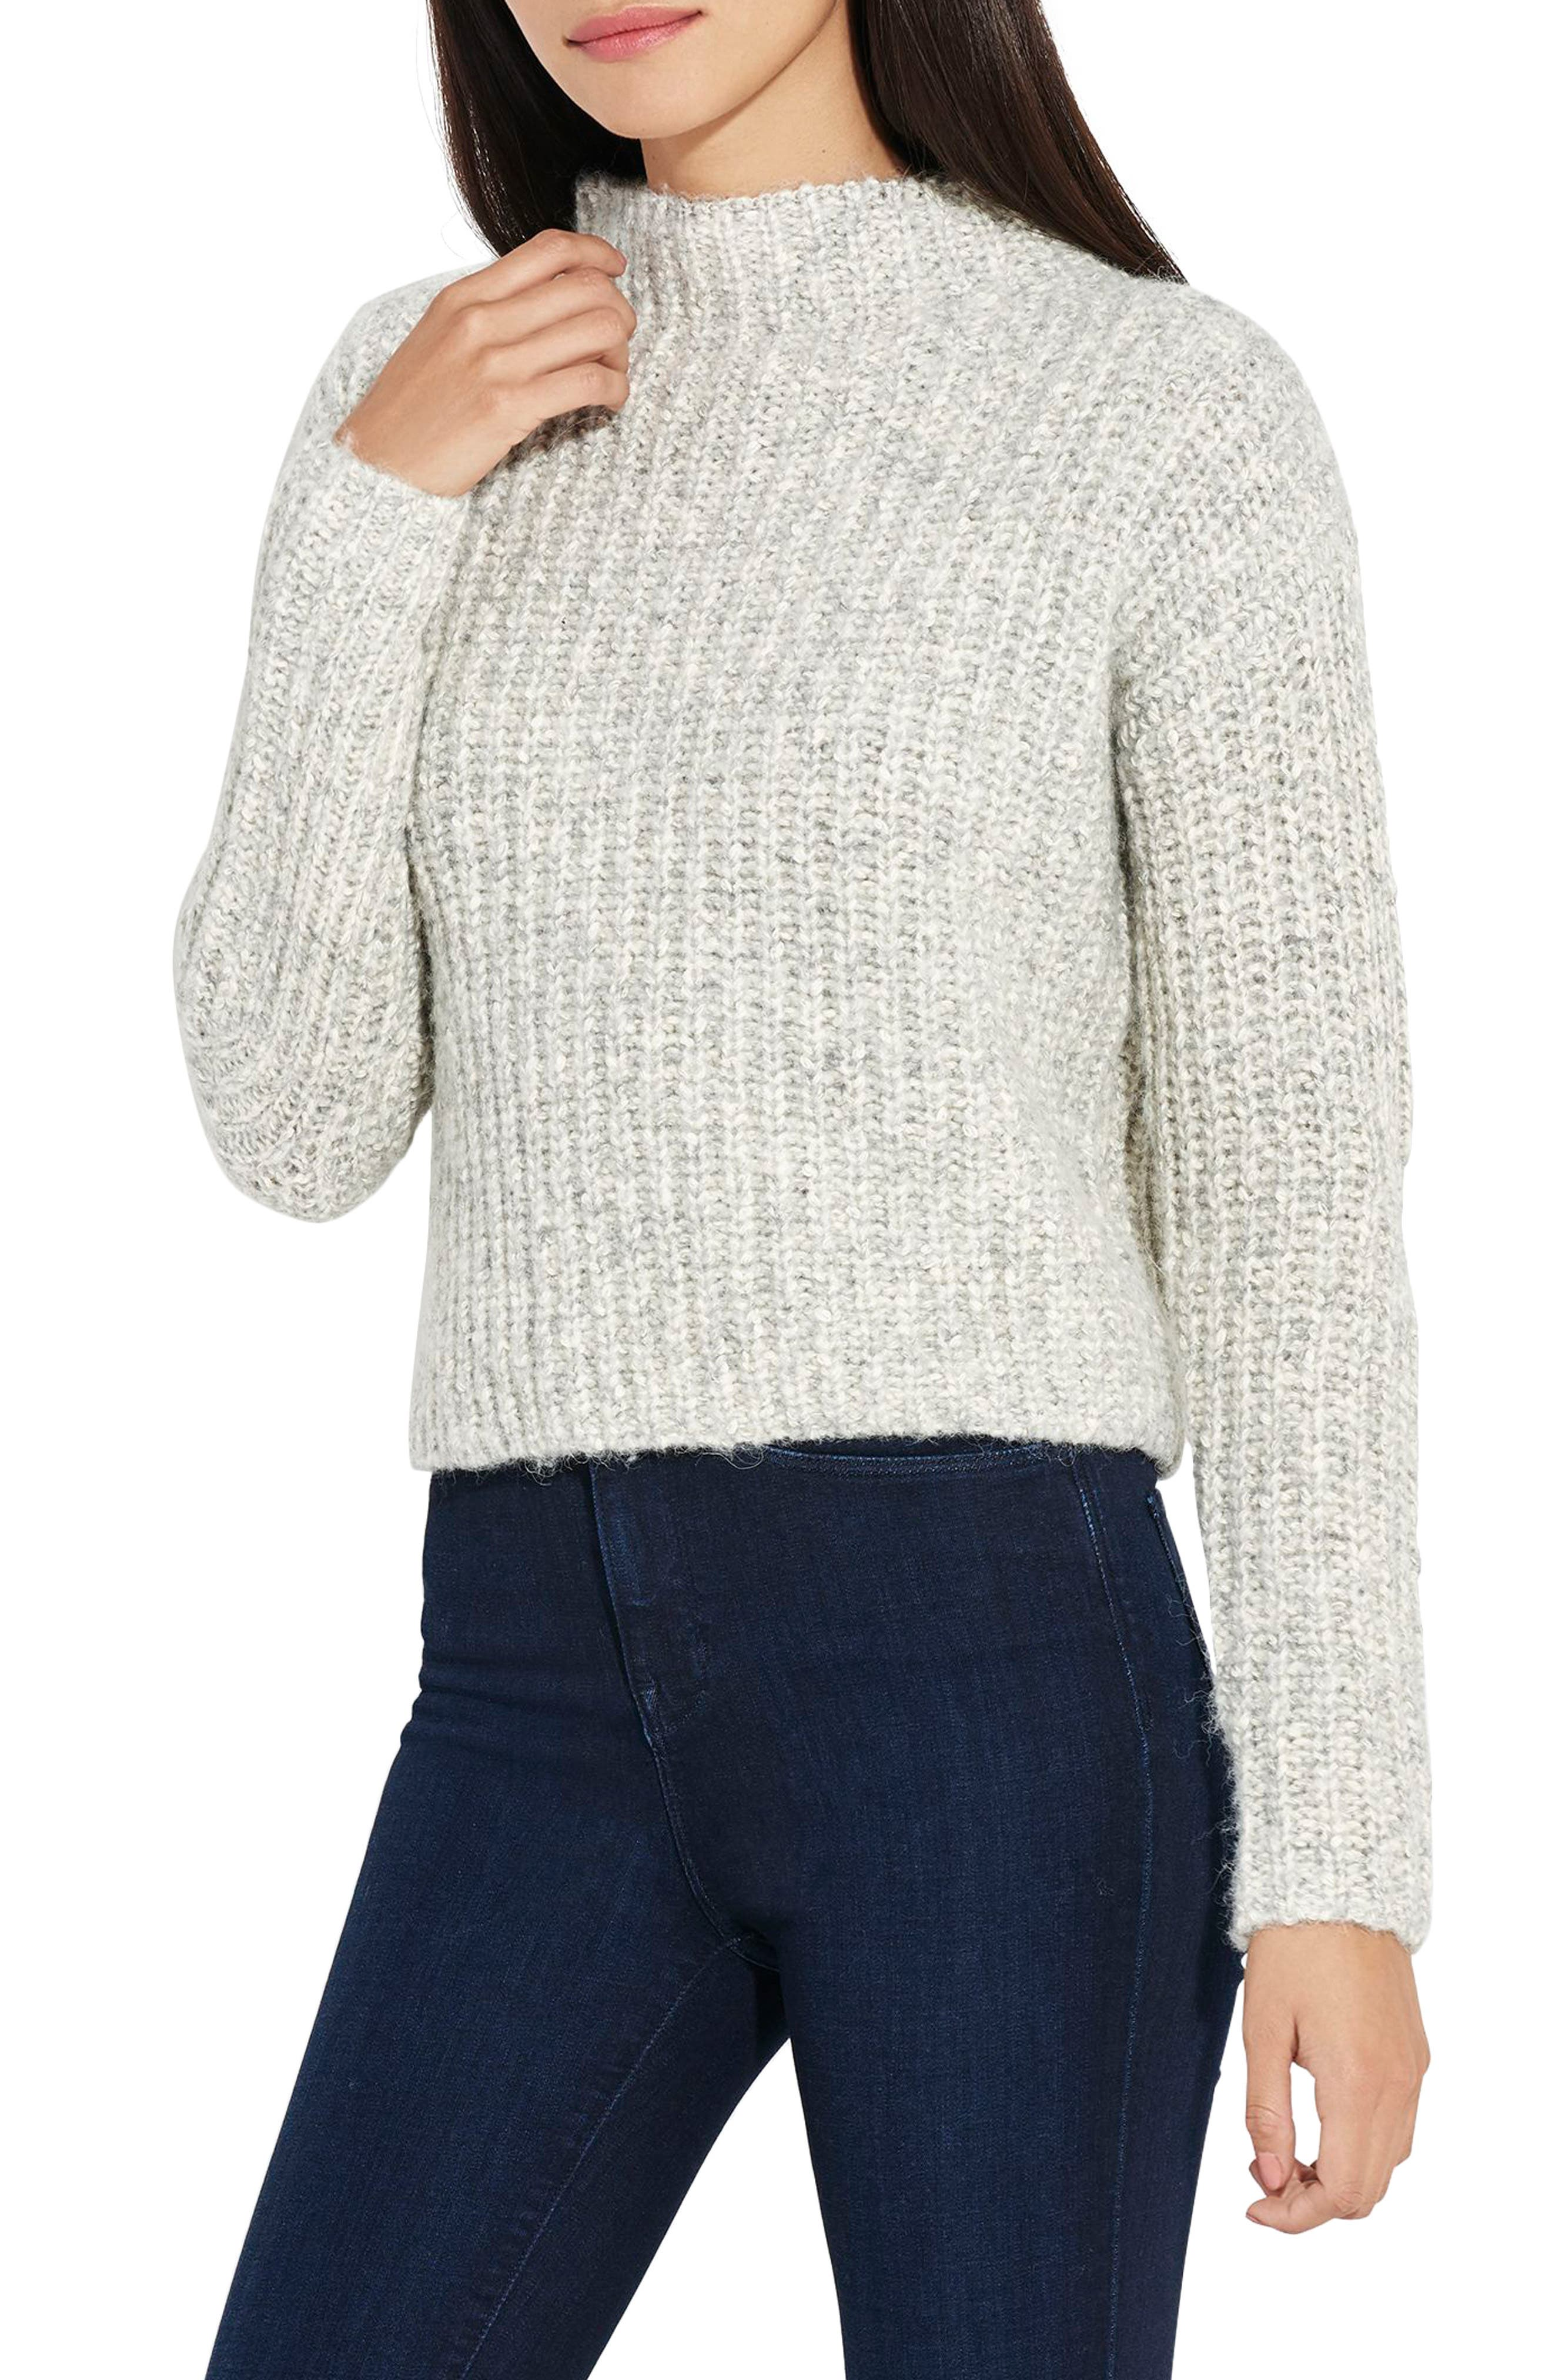 The Puffball Sweater,                             Alternate thumbnail 3, color,                             090